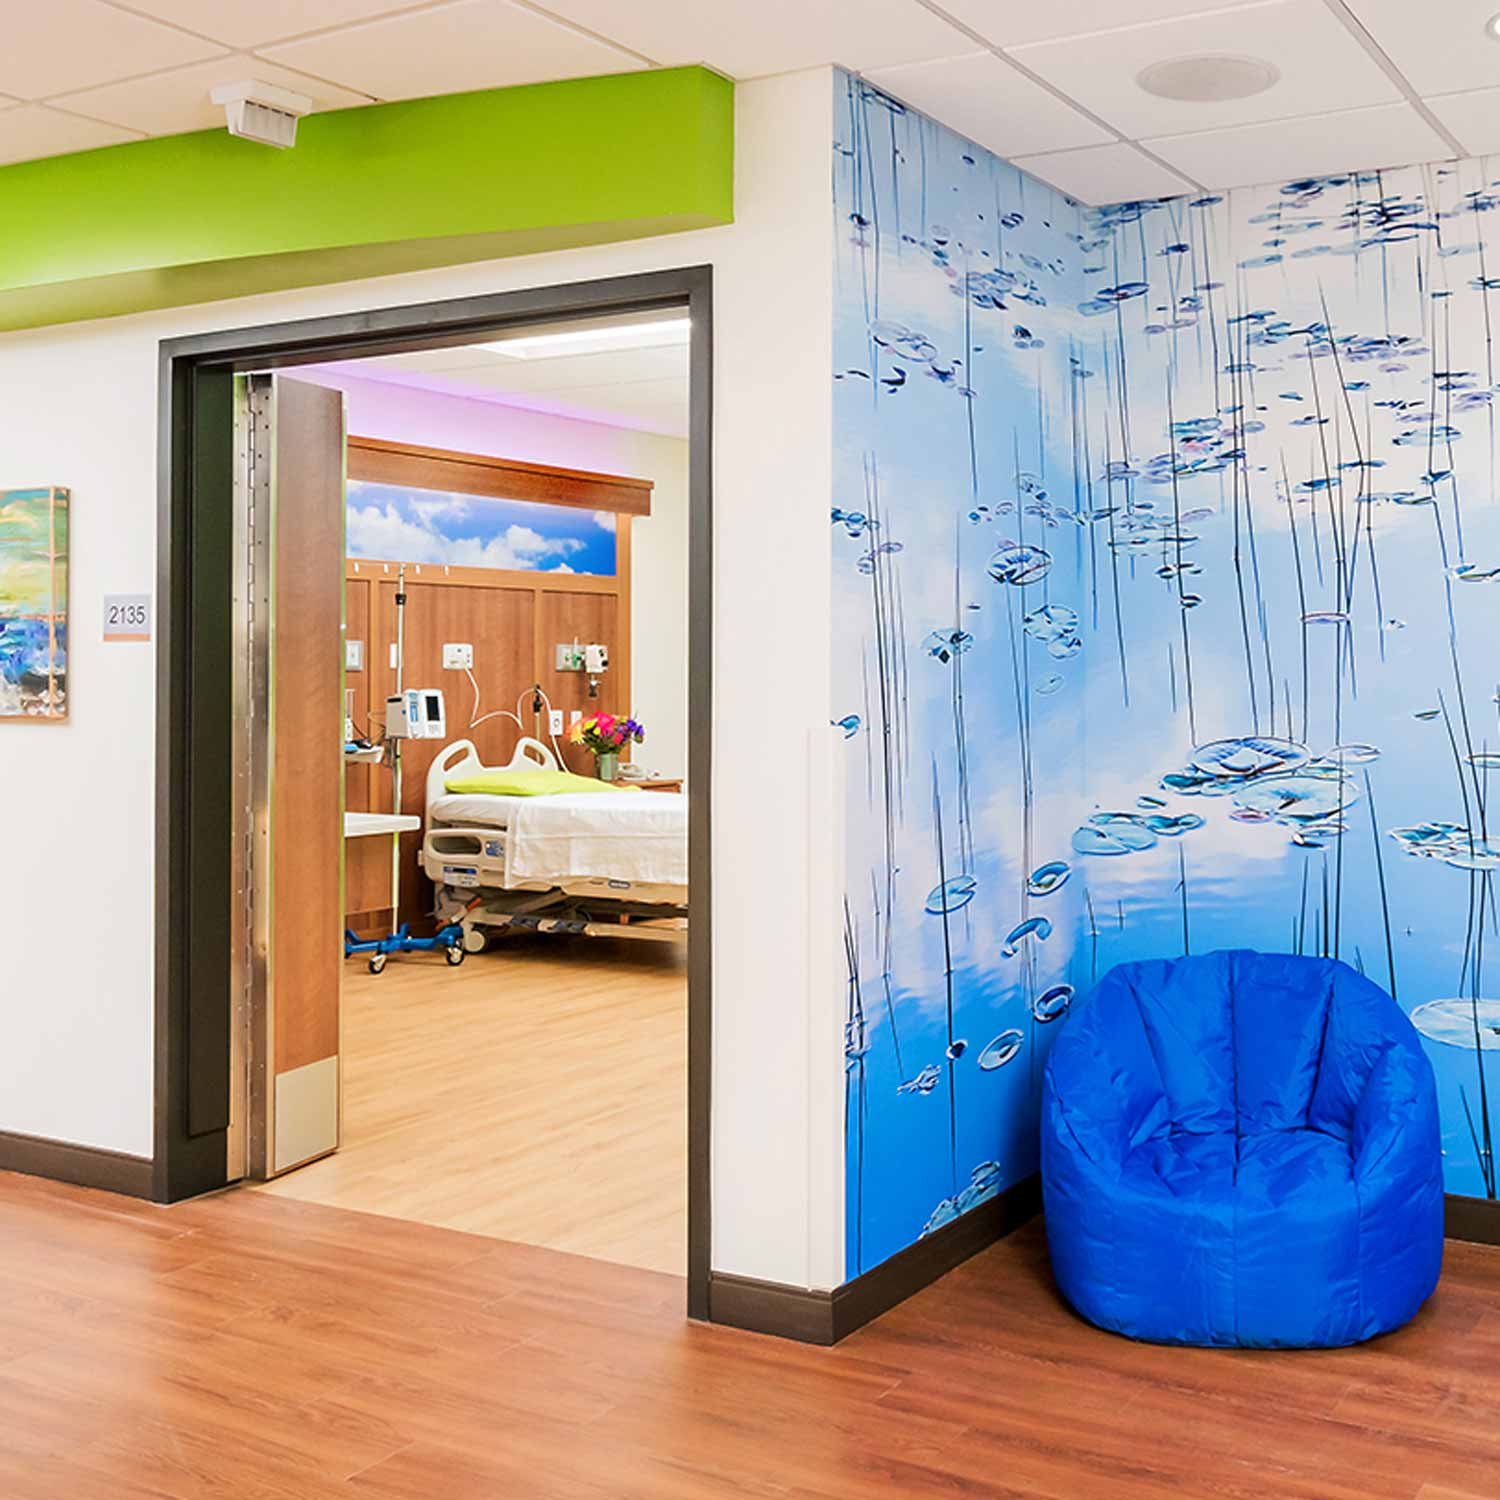 Healthcare design of patient rooms at Billings Clinic in Billings, Montana